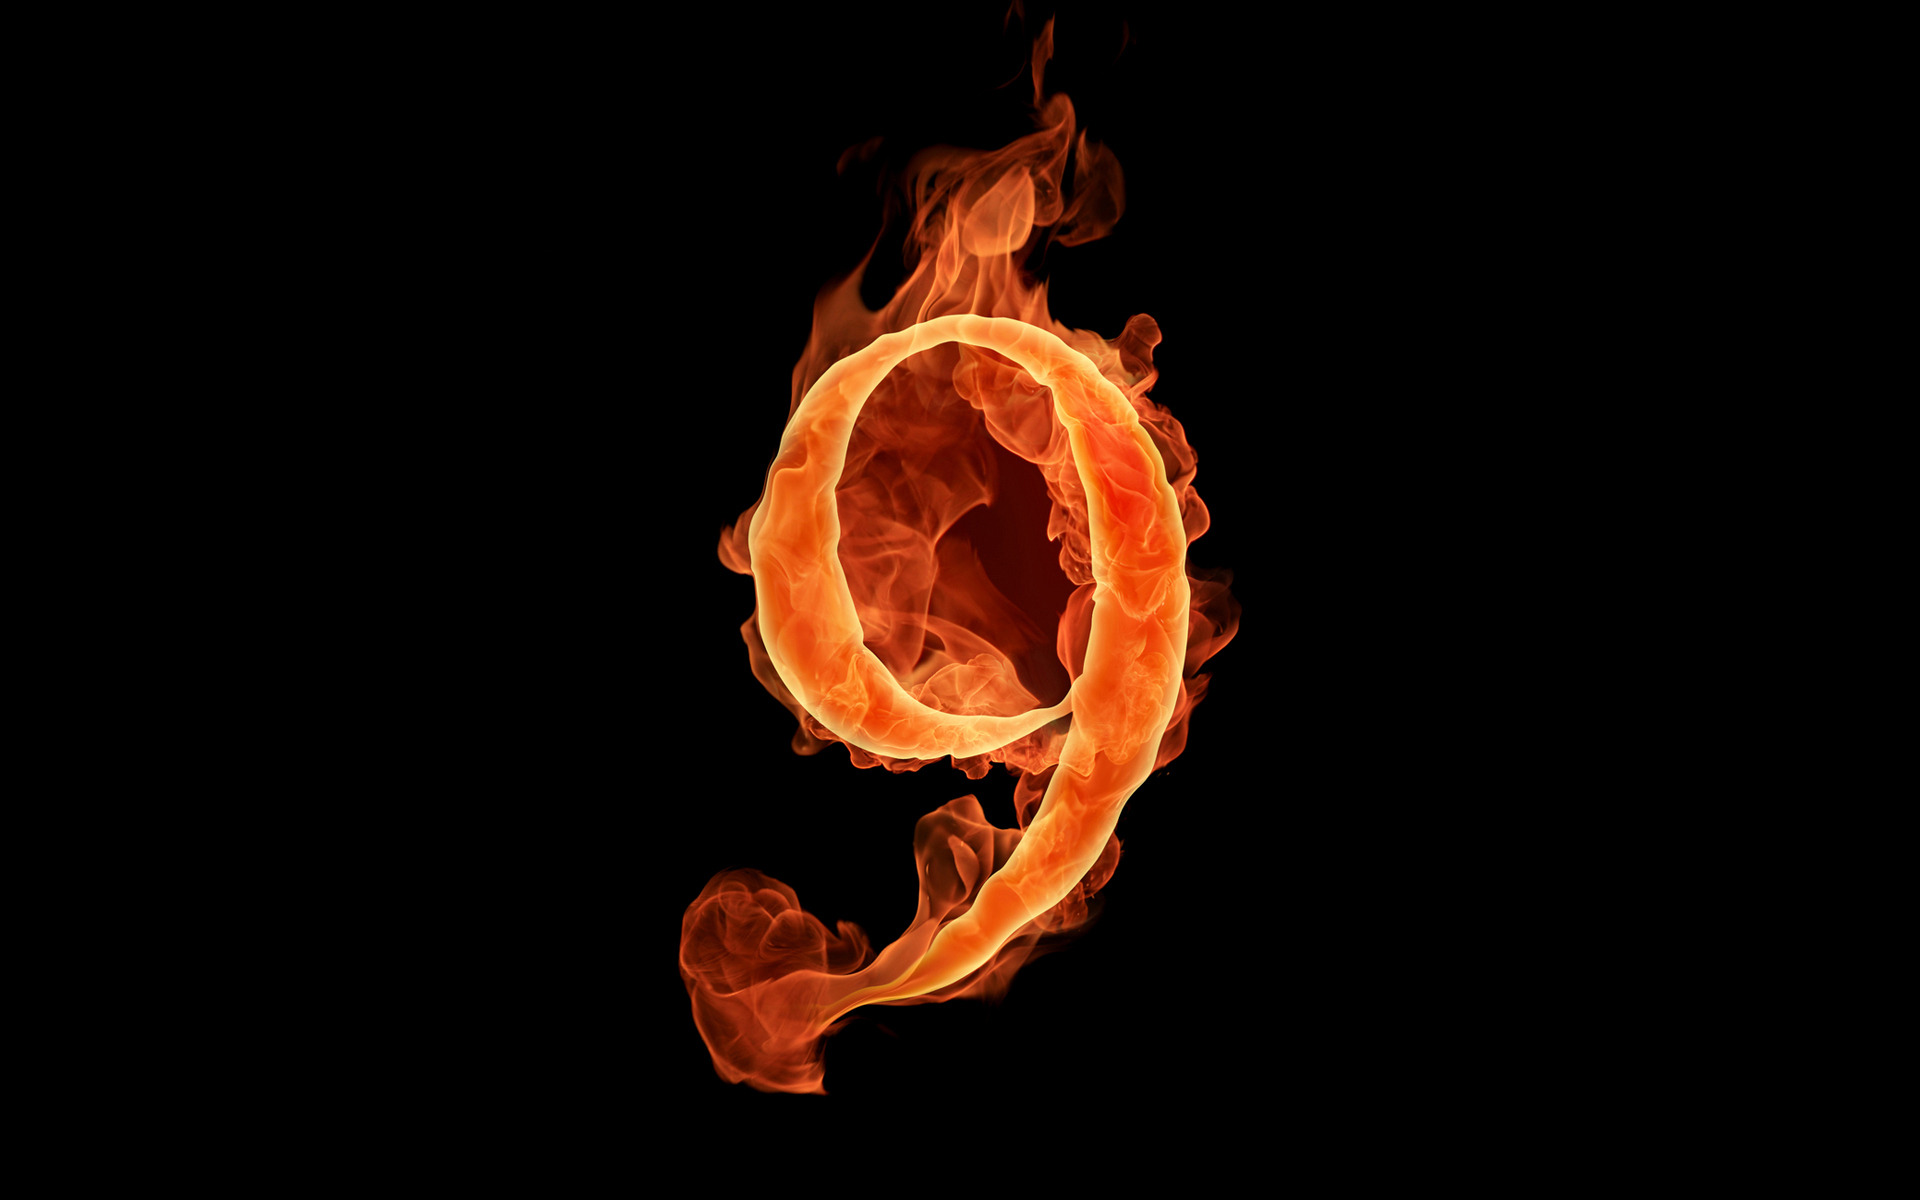 fiery numbers wallpaper 51112